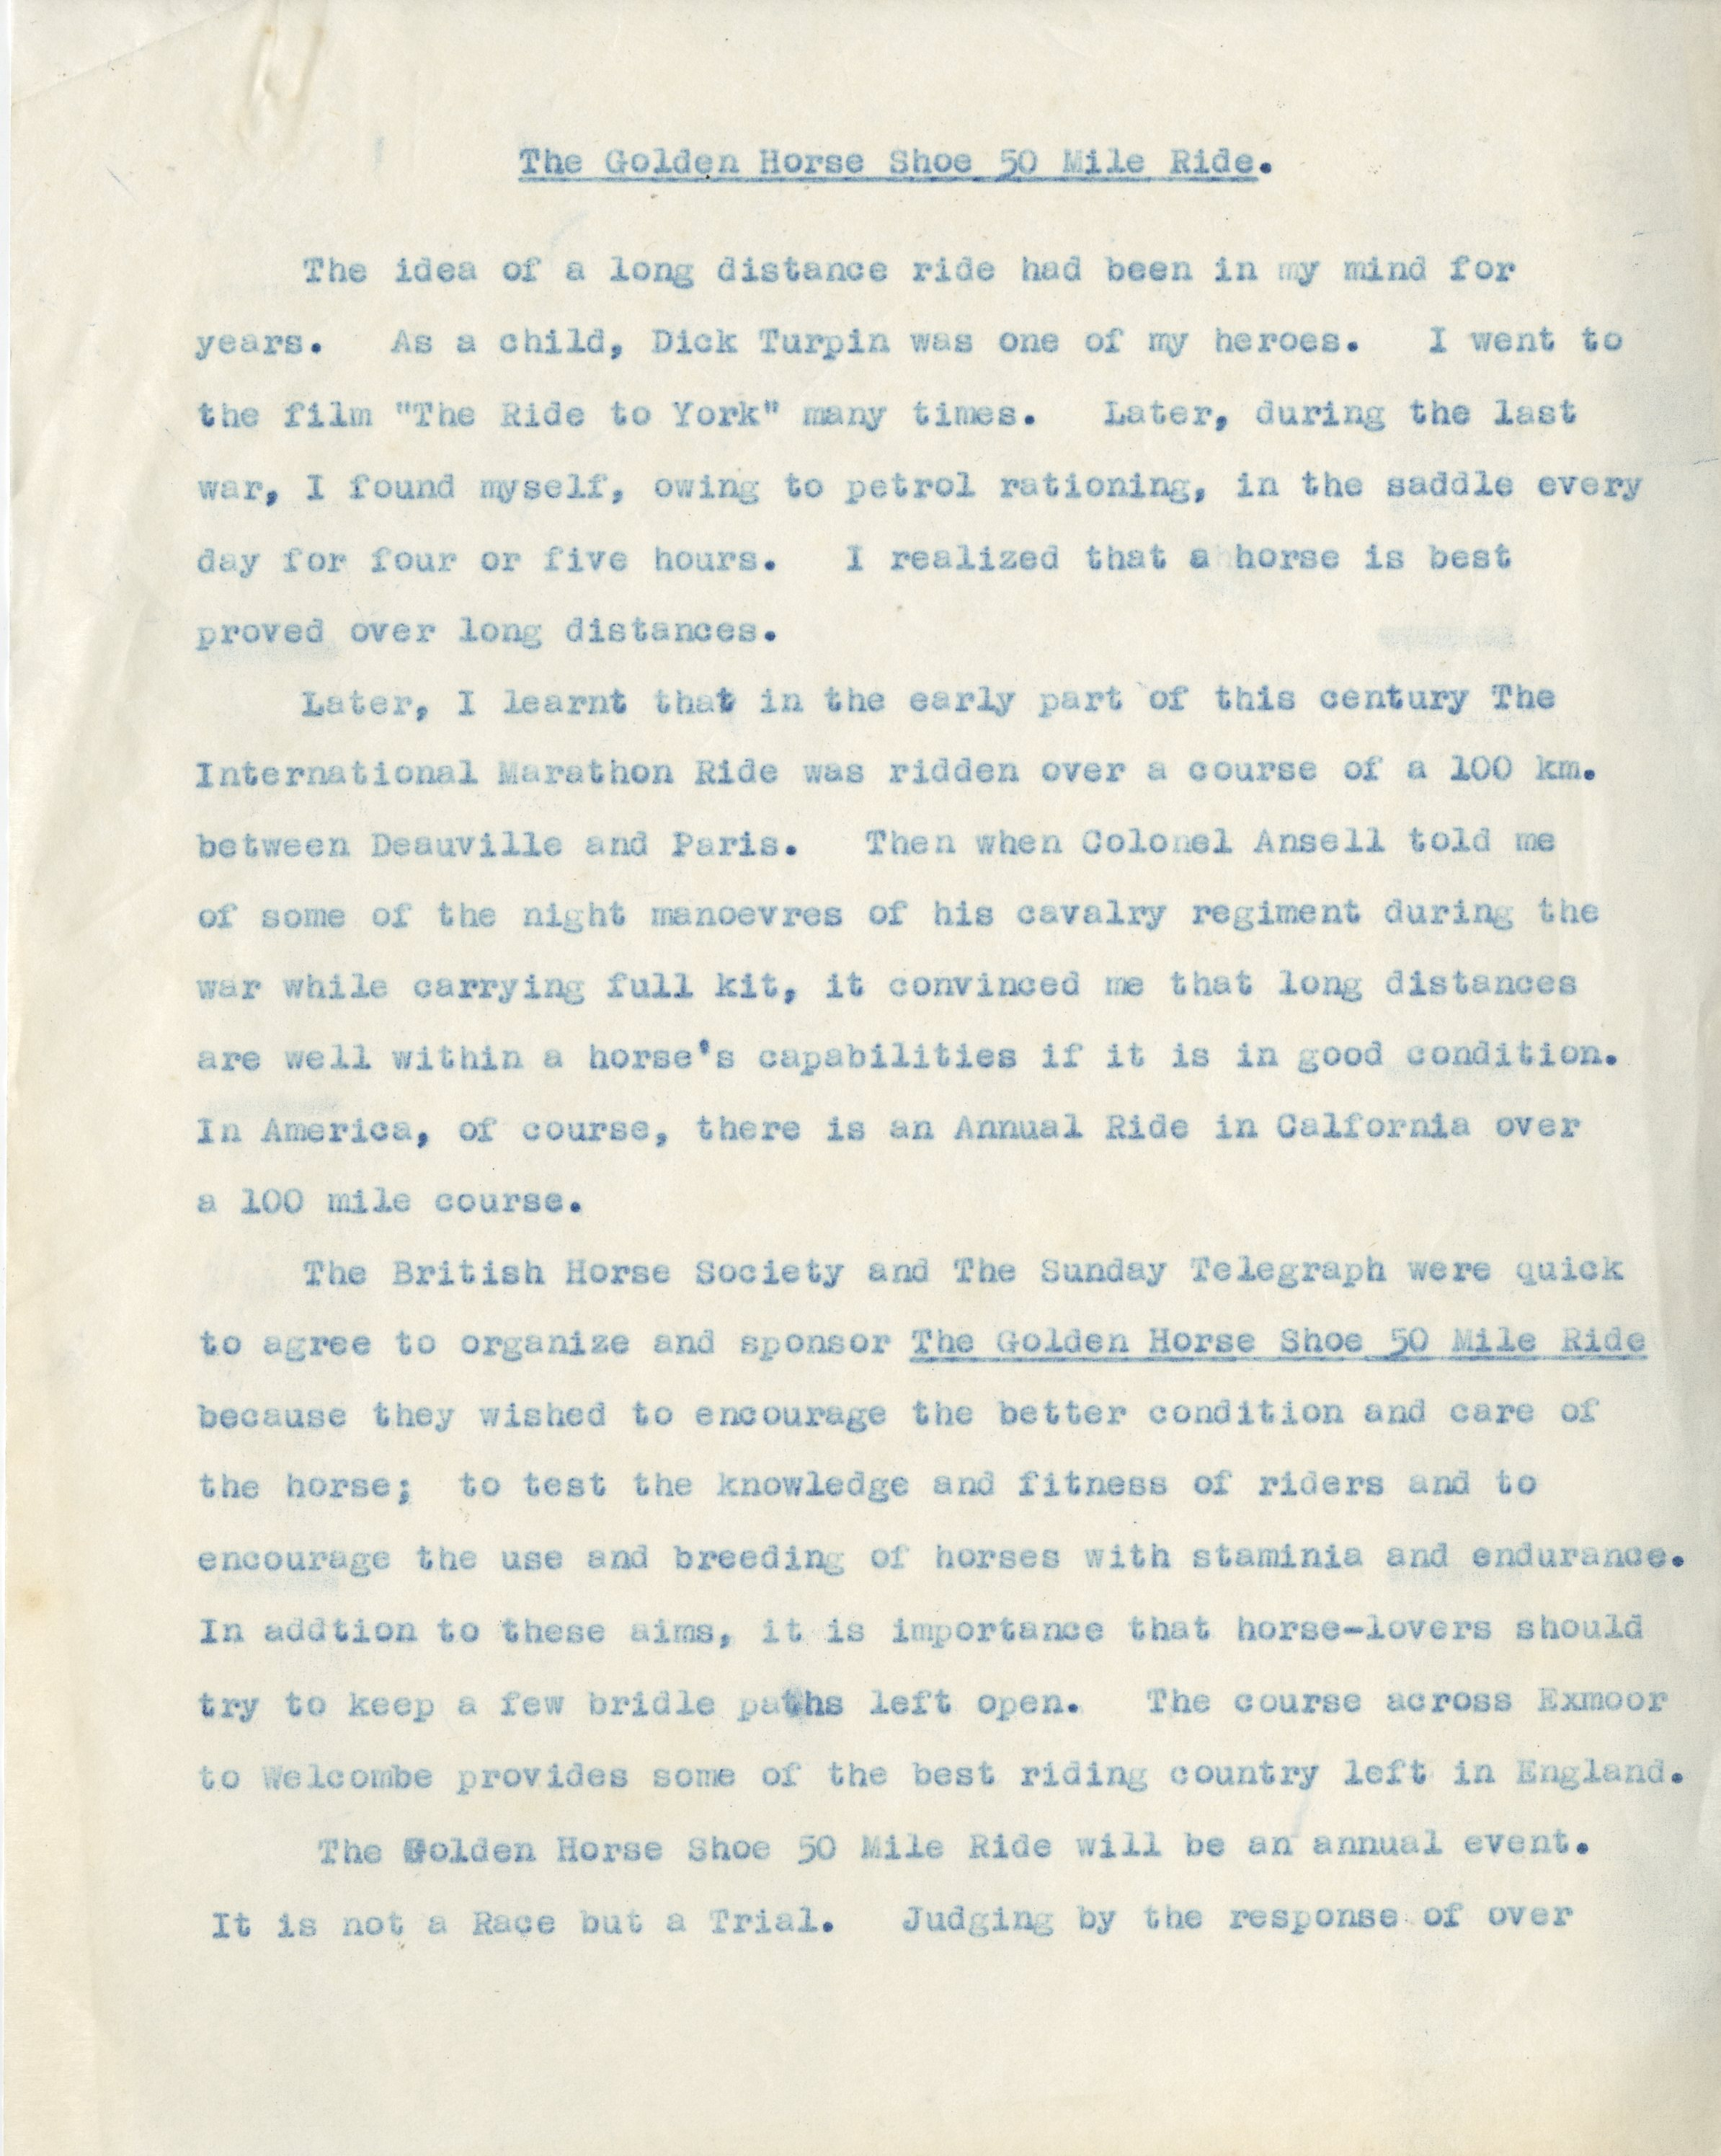 EUL MS 397/1041 Draft introduction for Golden Horseshoe Fifty Mile Ride Programme